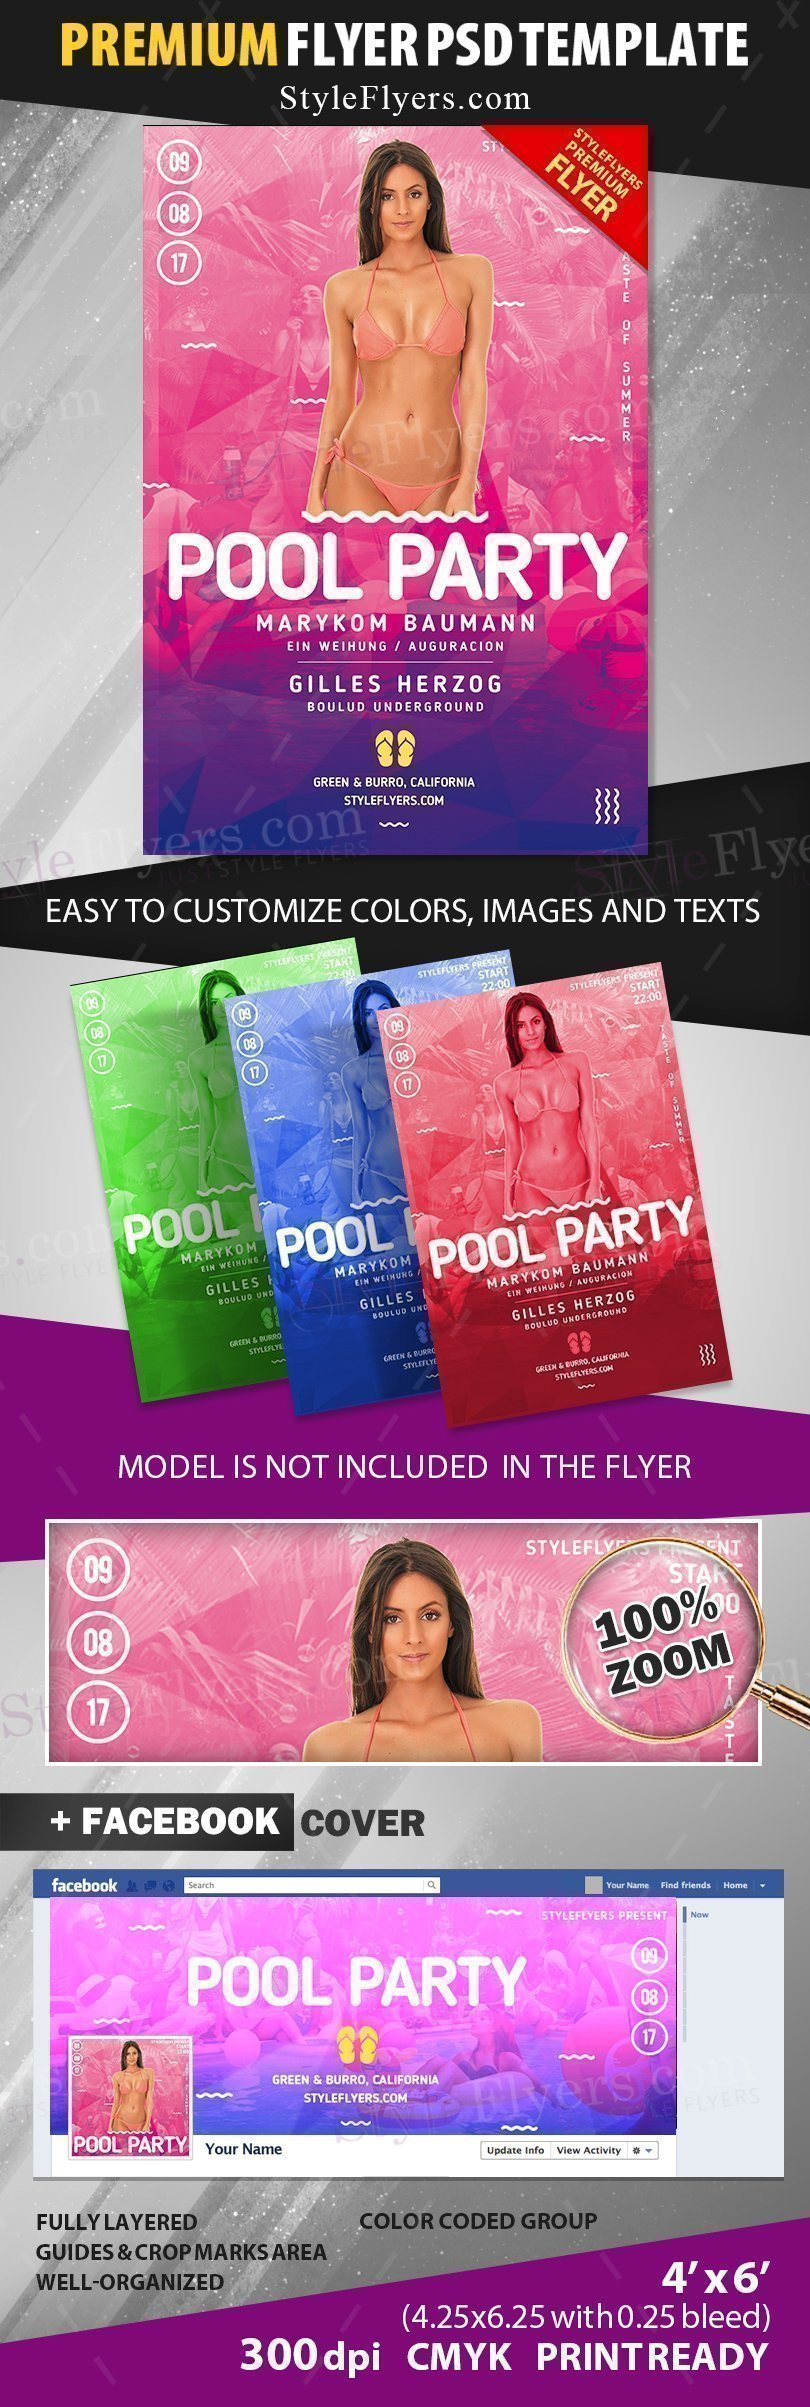 preview_pool-party_psd_flyer